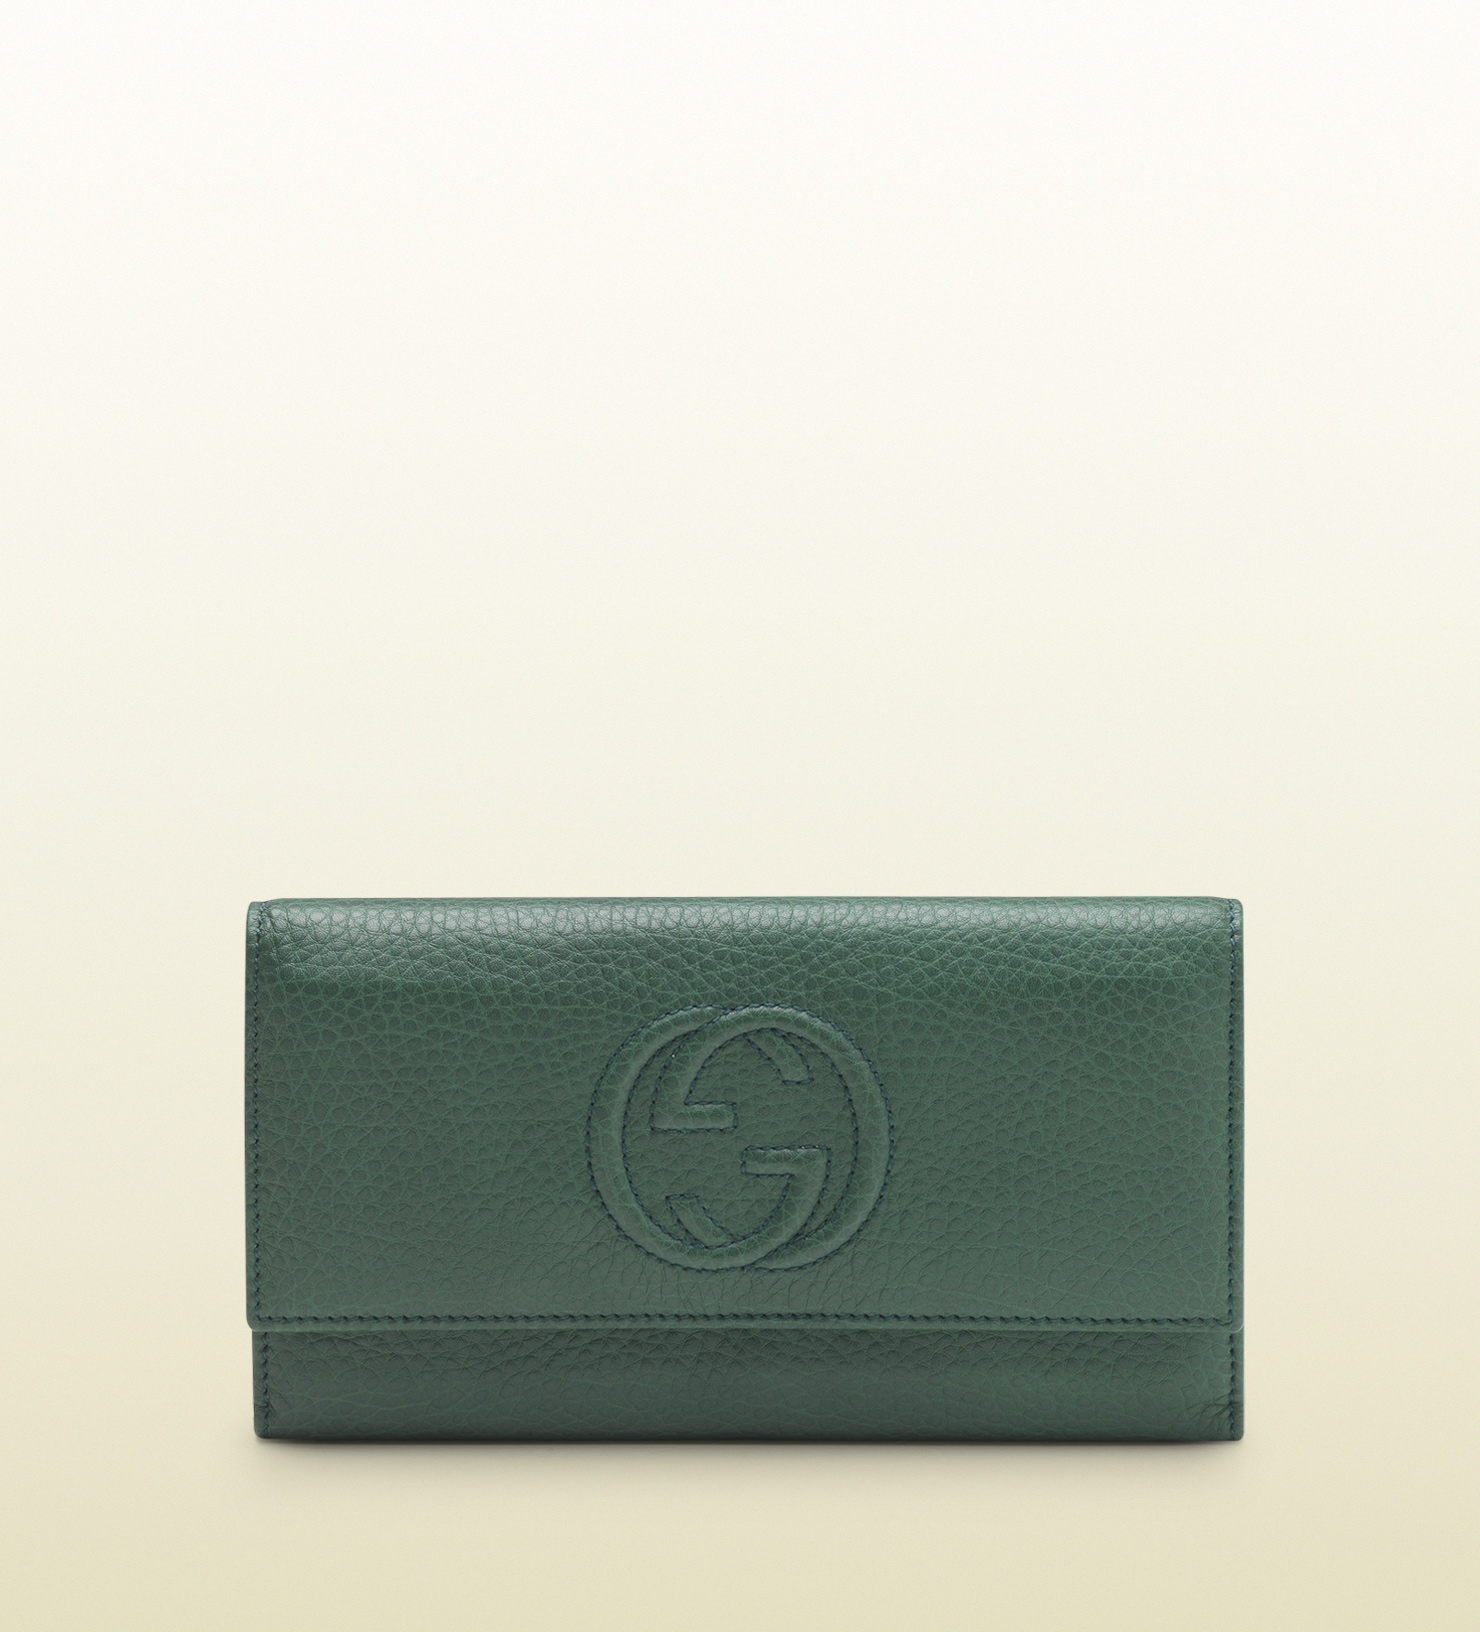 8c79bb93aaa Gucci Green Wallet - Best Photo Wallet Justiceforkenny.Org